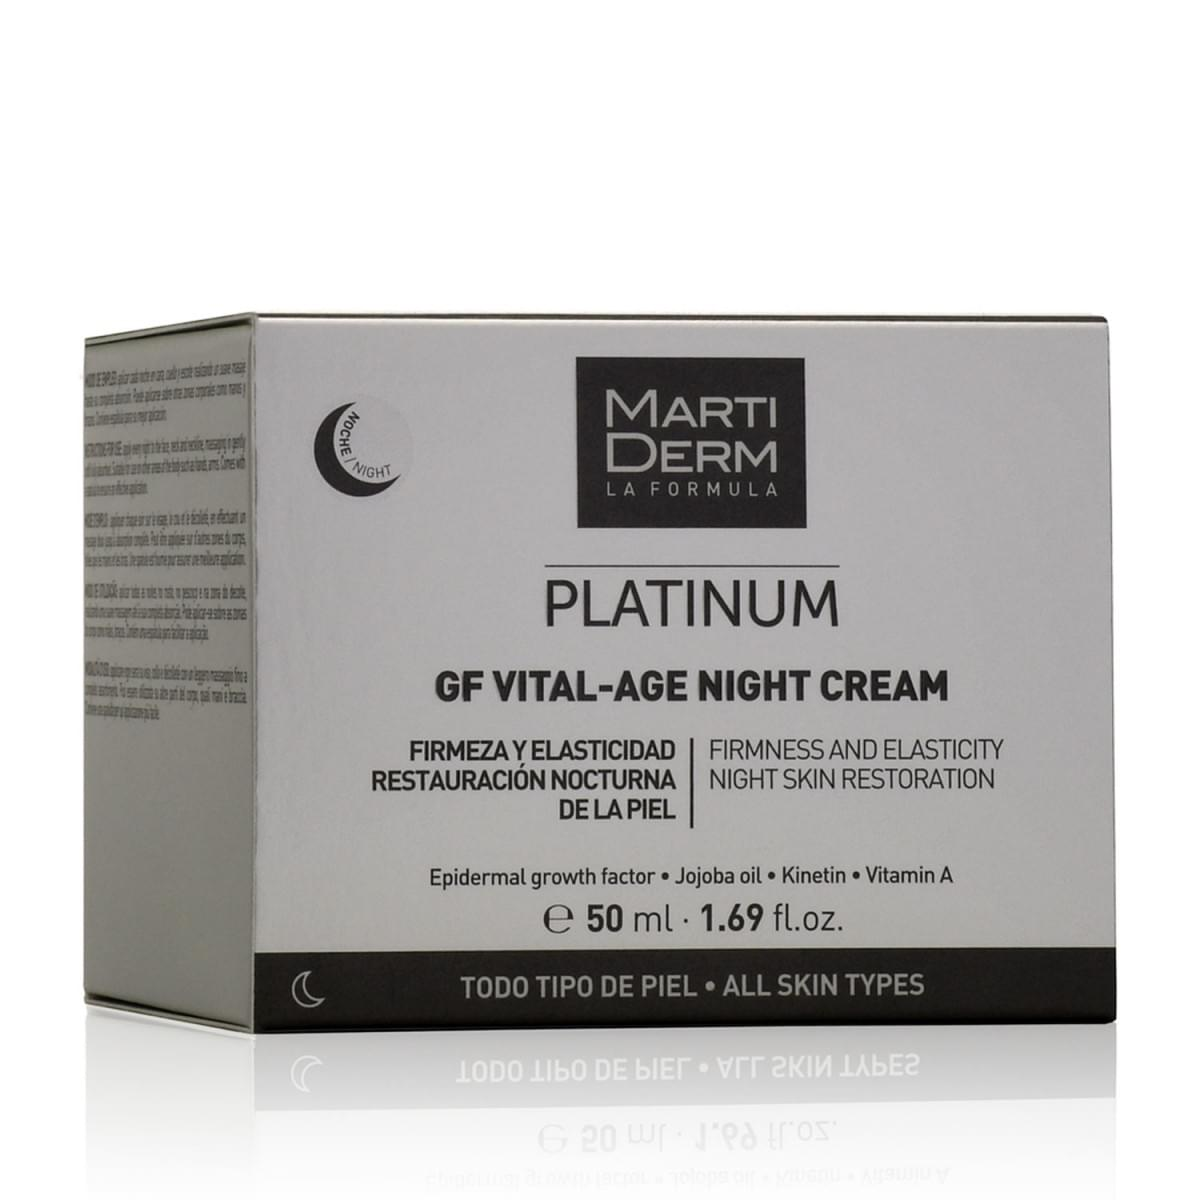 Ночной крем Martiderm Platinum GF Vital-Age Night Cream